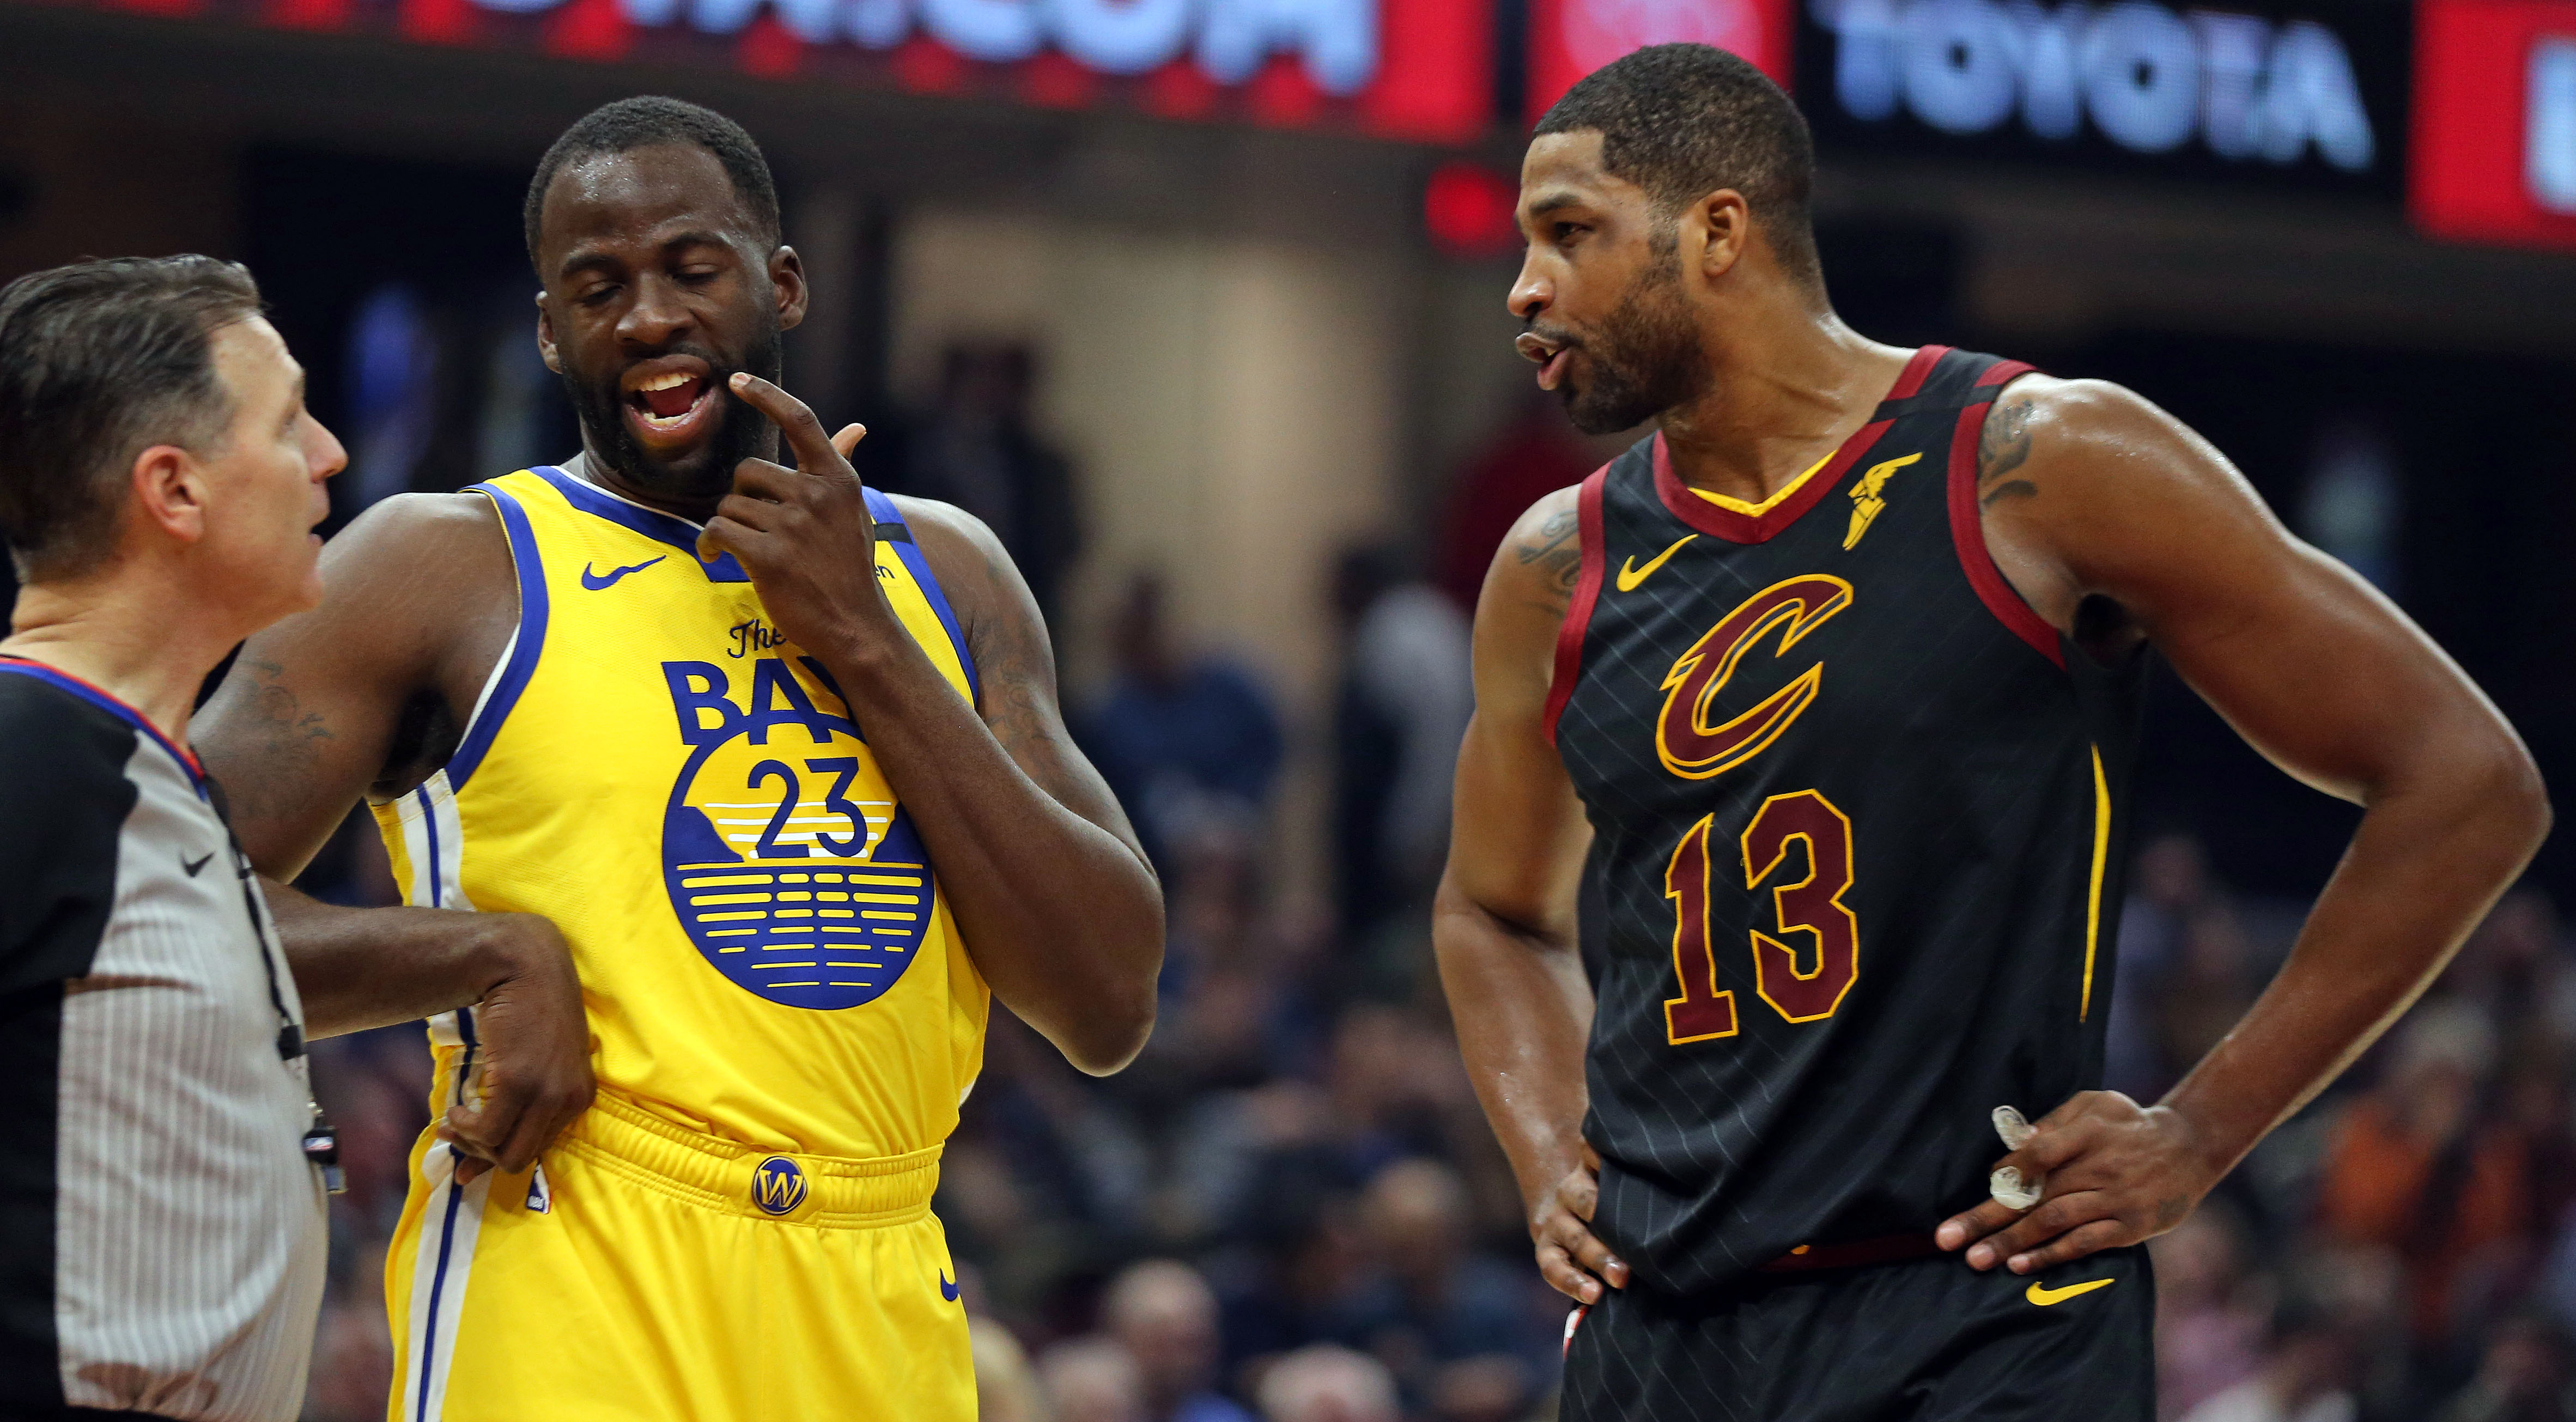 Nba Draft 2020 Golden State Warriors Team Needs And How It Might Affect The Cavaliers Cleveland Com